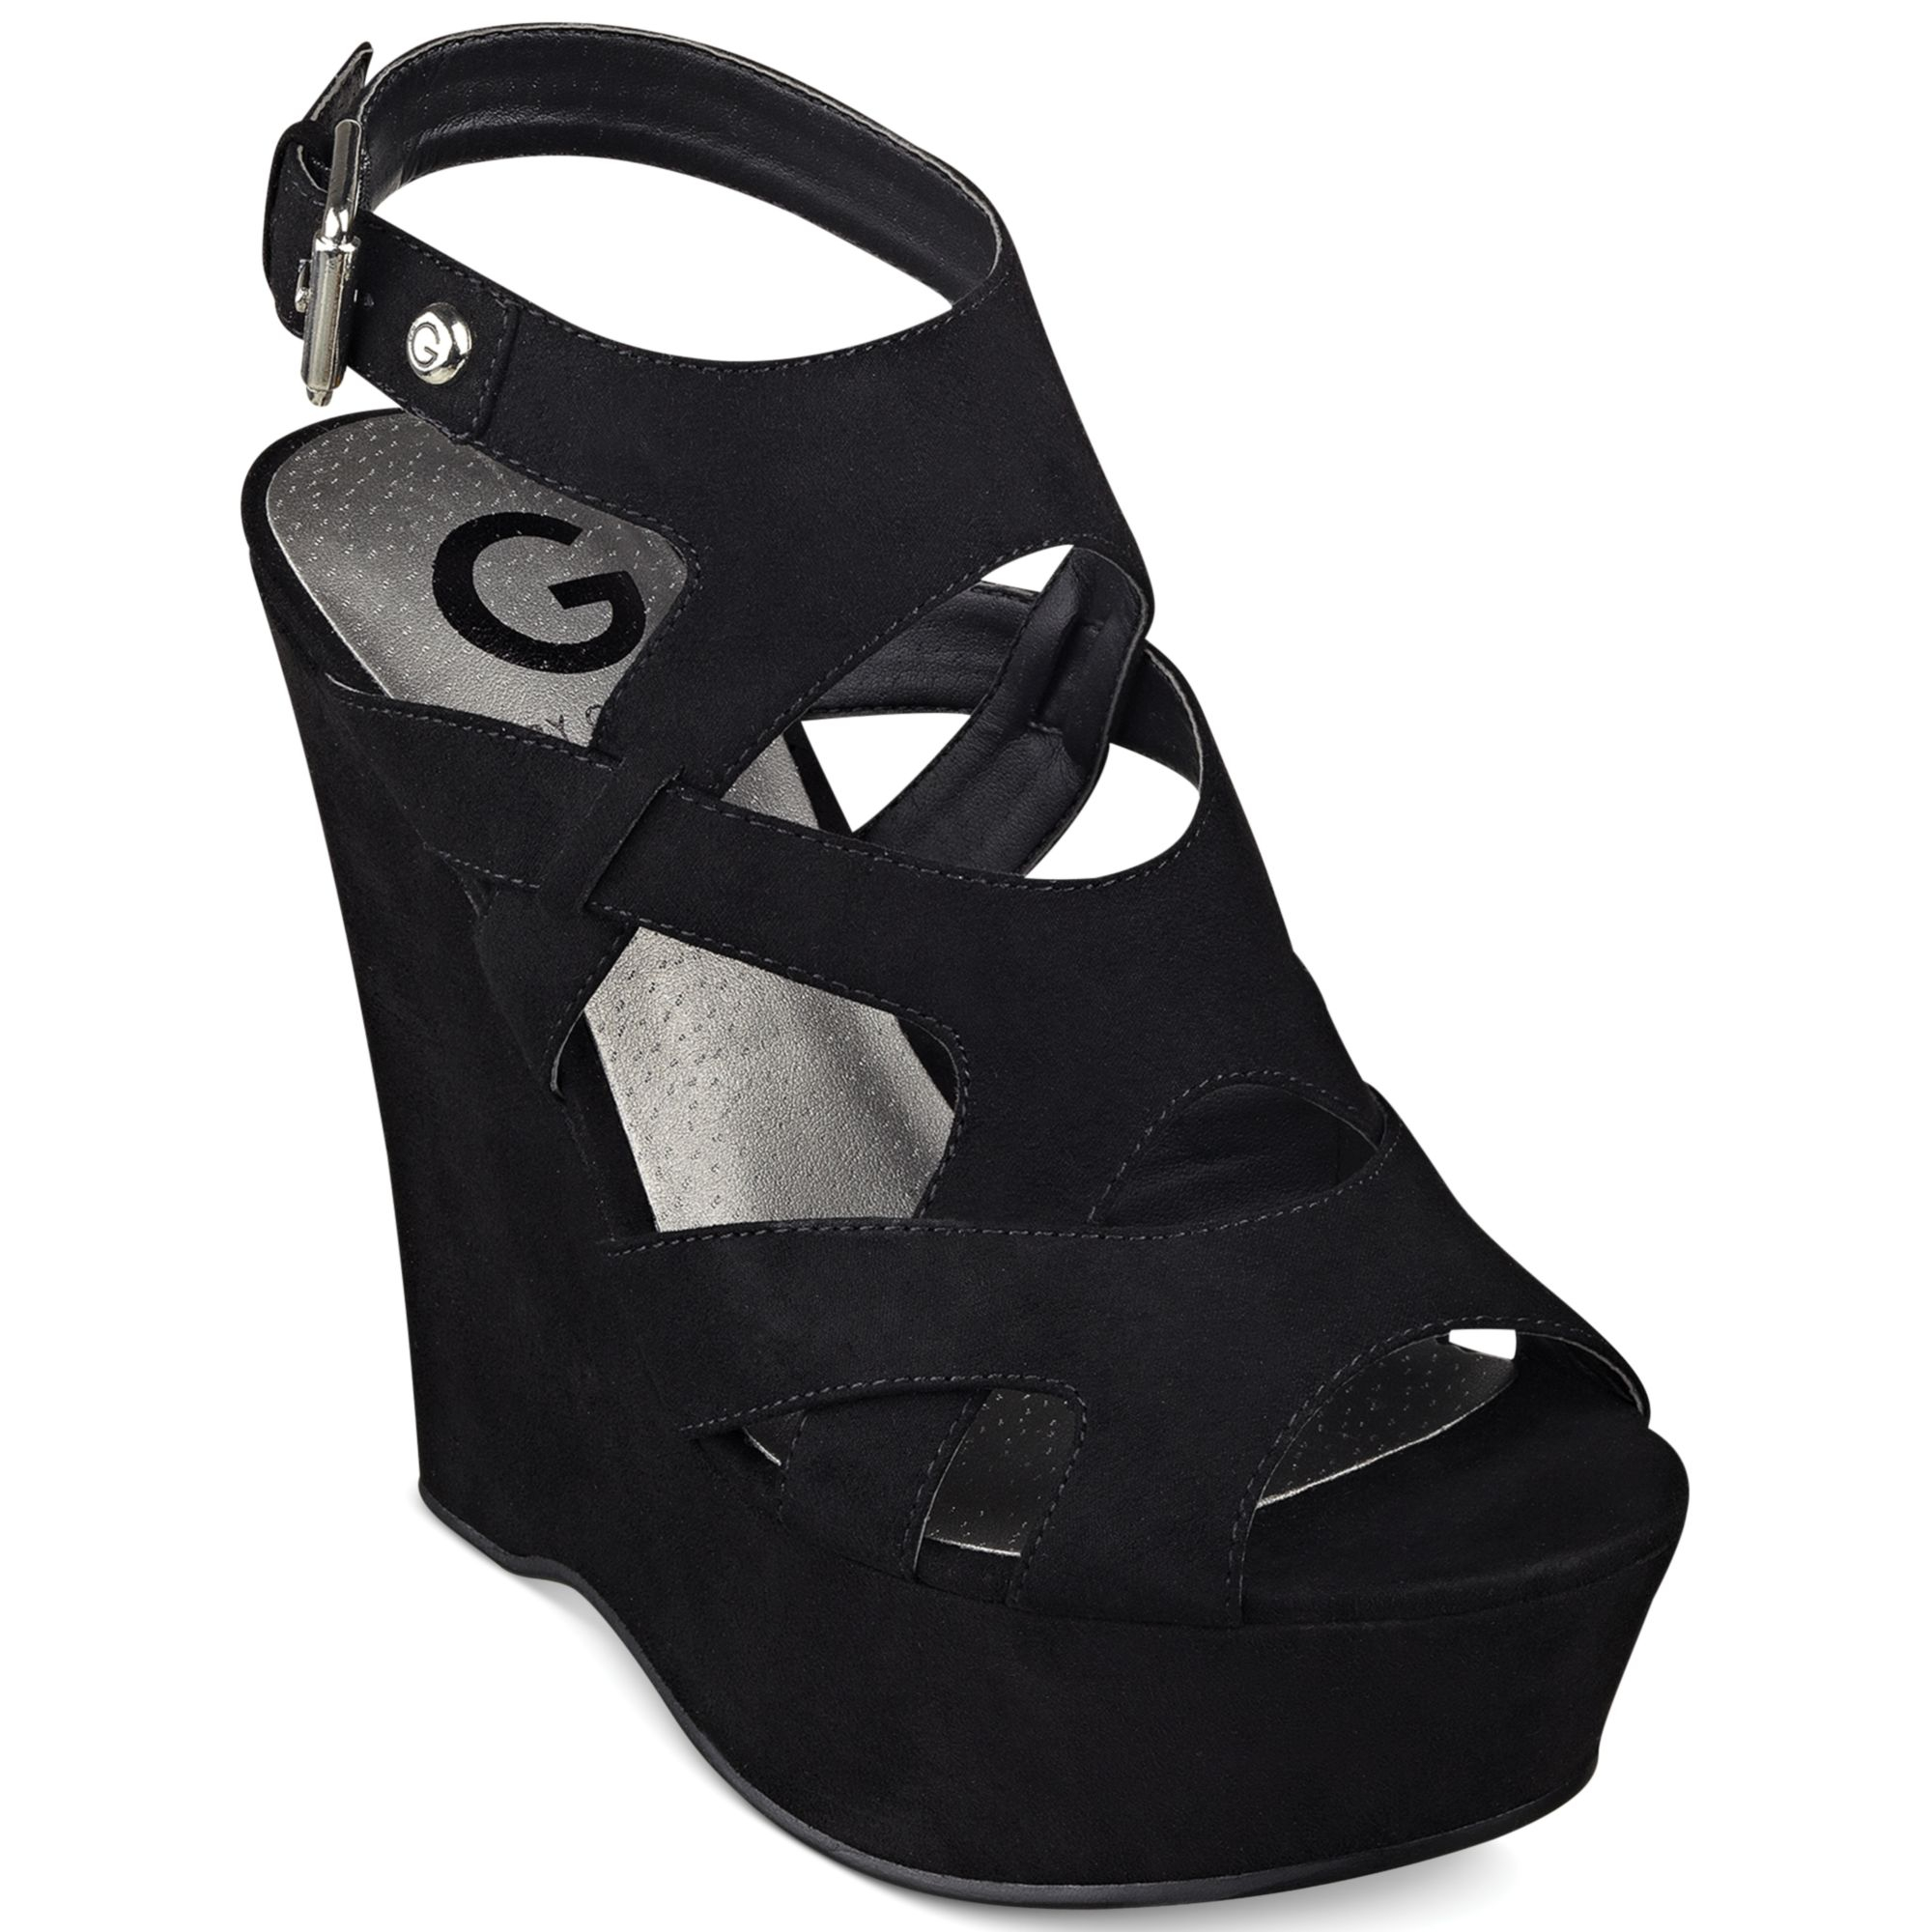 8d546e9e5b8764 Lyst - G by Guess Womens Shoes Hizza Platform Wedge Sandals in Black